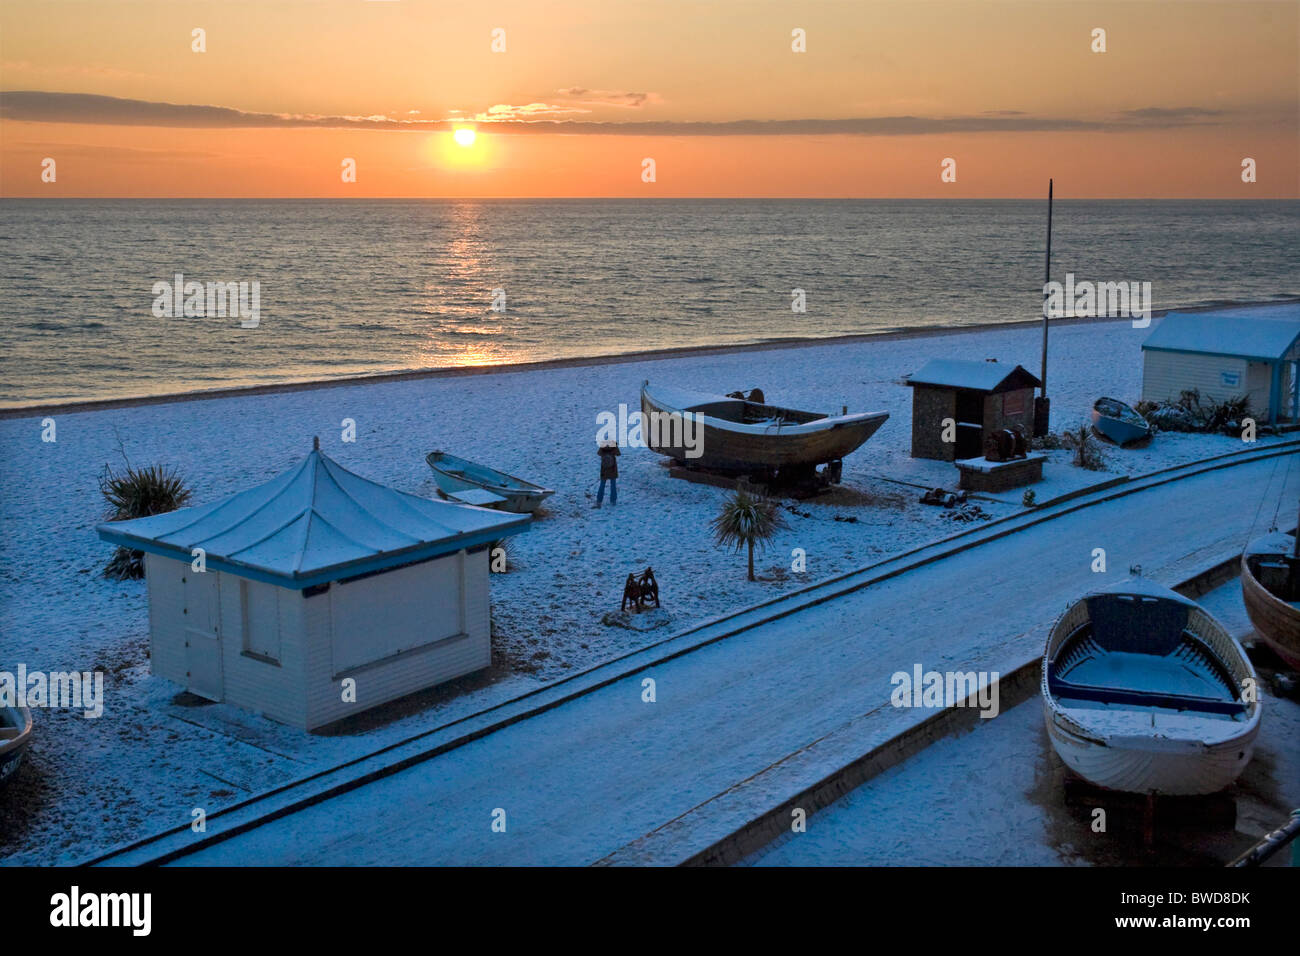 Boats on snow covered beach at sunset. Brighton, UK JPH0269 Stock Photo